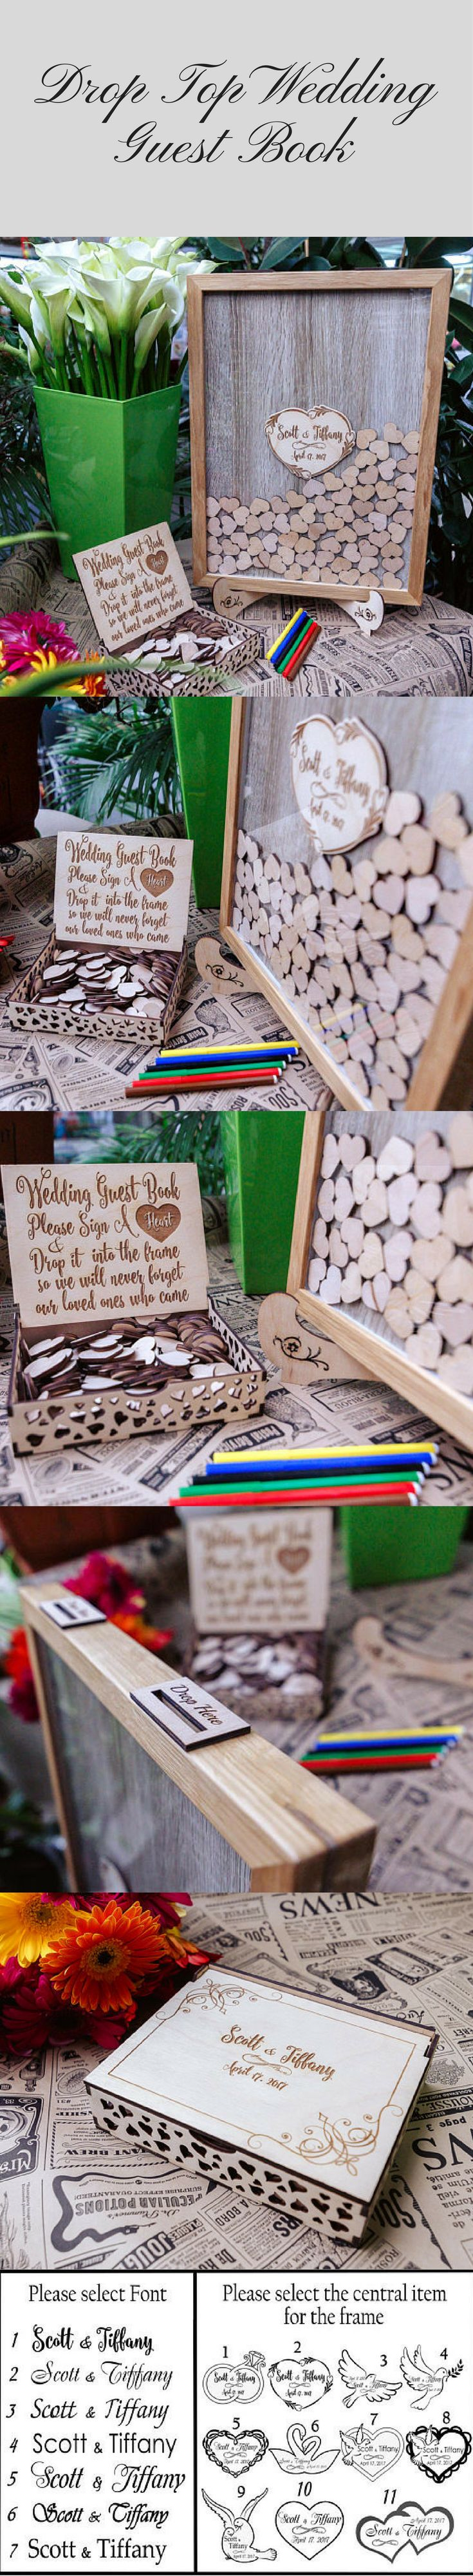 A guest book made of oak-wood can become a stylish present and interior decoration. We use only top quality materials and pay attention to all the details. Using natural oak-wood, we strive to create a special present for your friends and family. #guestbook #wedding #woodguestbook #droptopguestbook #affiliate